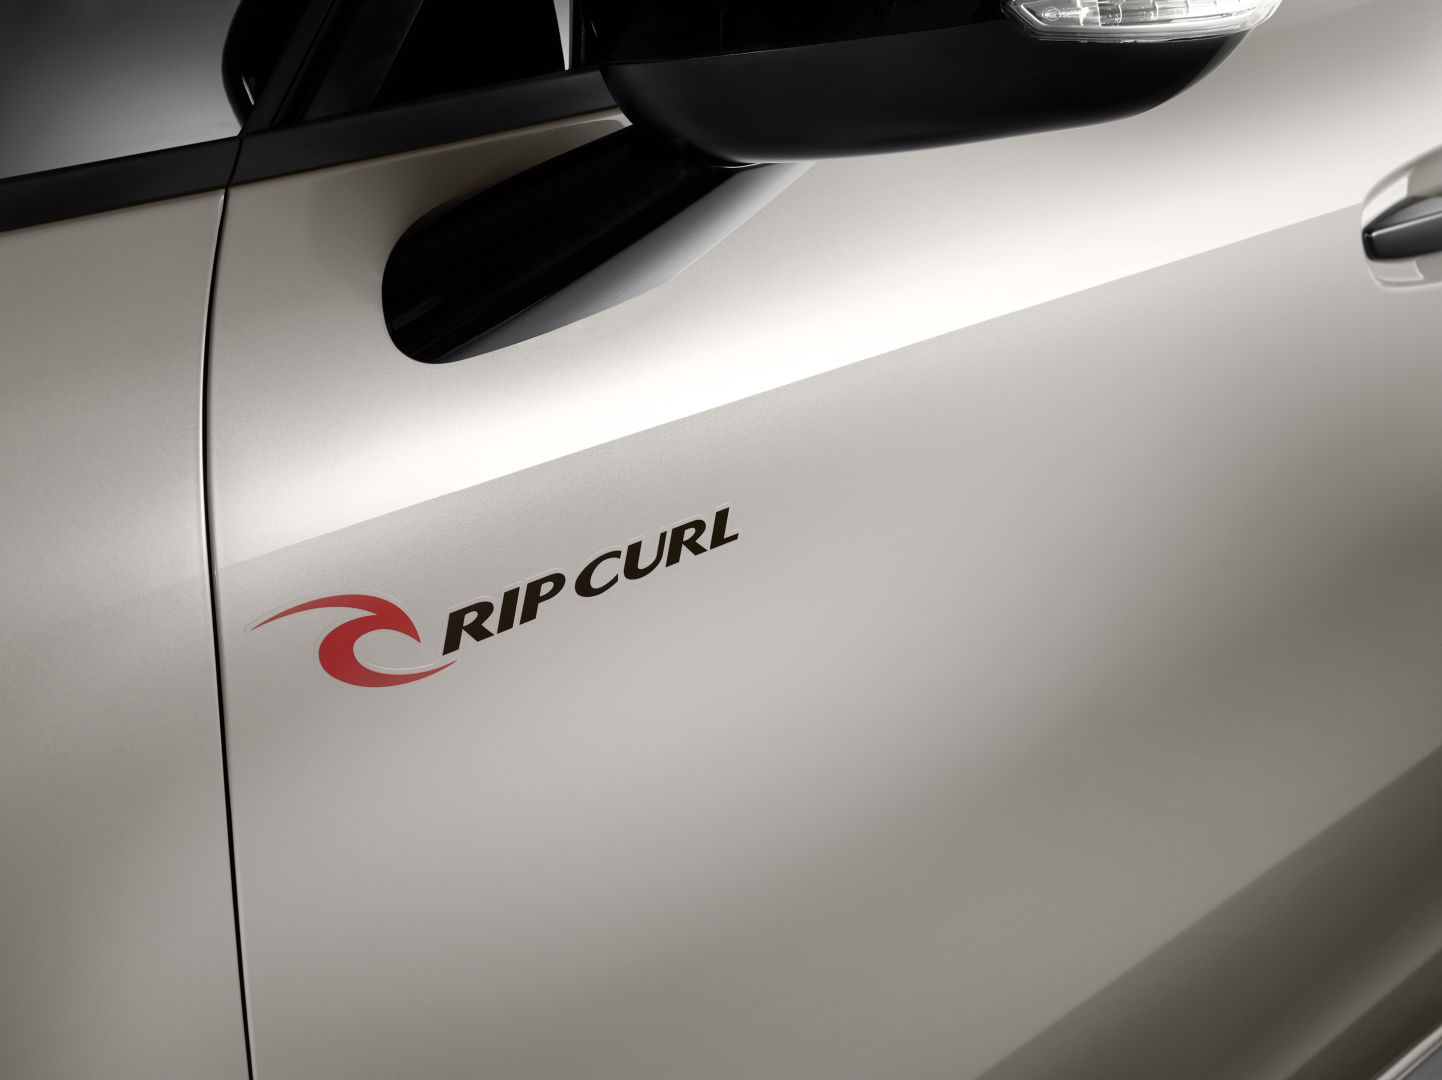 Rip Curl by Citroen